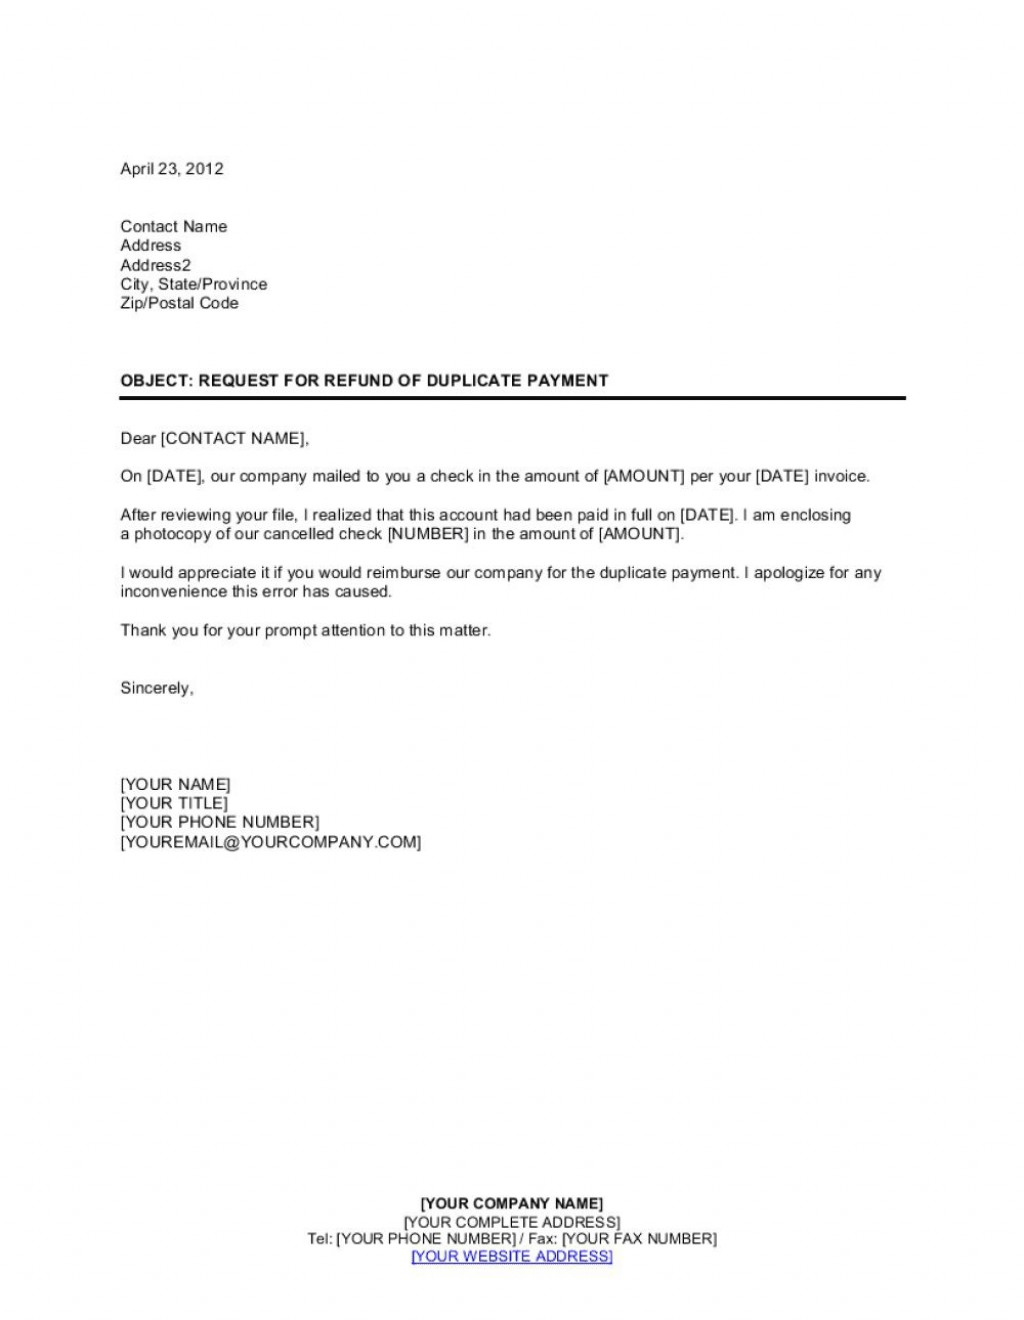 004 Simple No Return Policy Template High Resolution Large